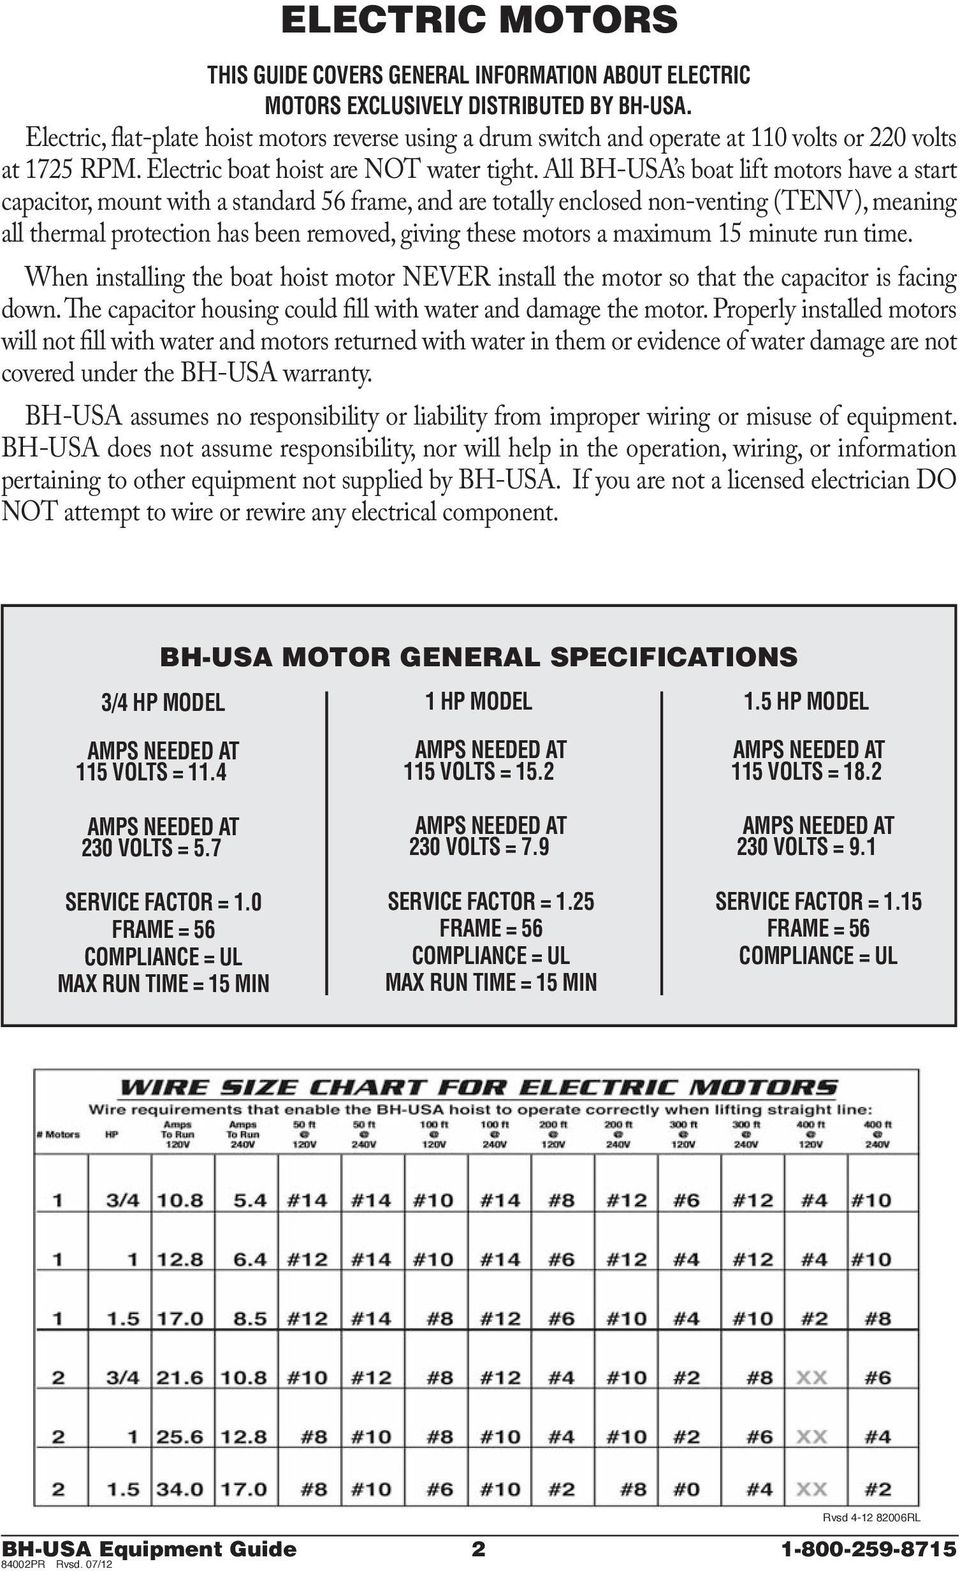 medium resolution of all bh usa s boat lift motors have a start capacitor mount with a